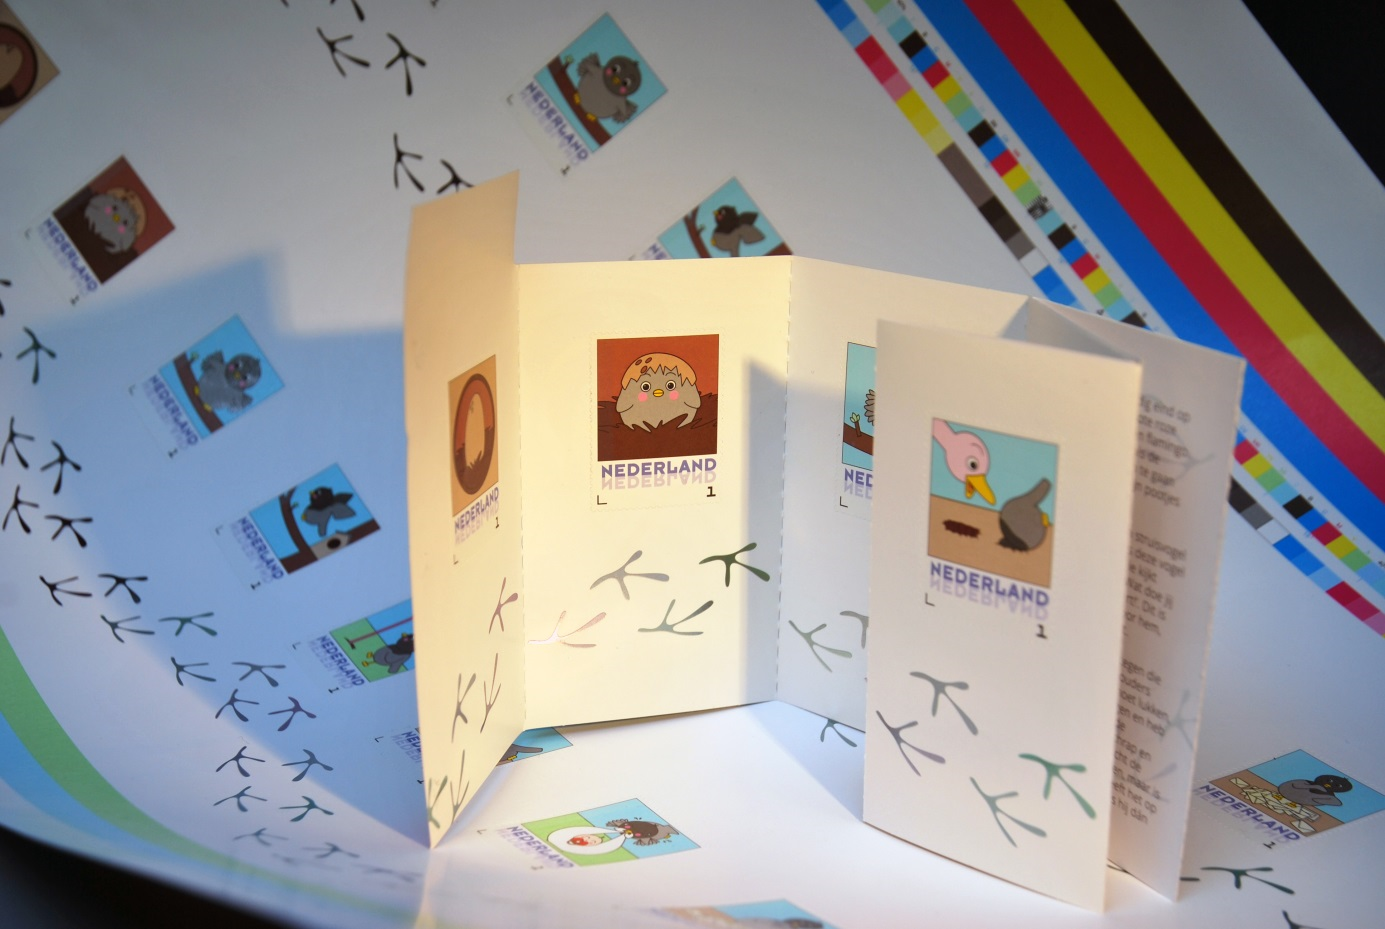 New stamp booklet Carrier pigeon in cooperation with PostNL